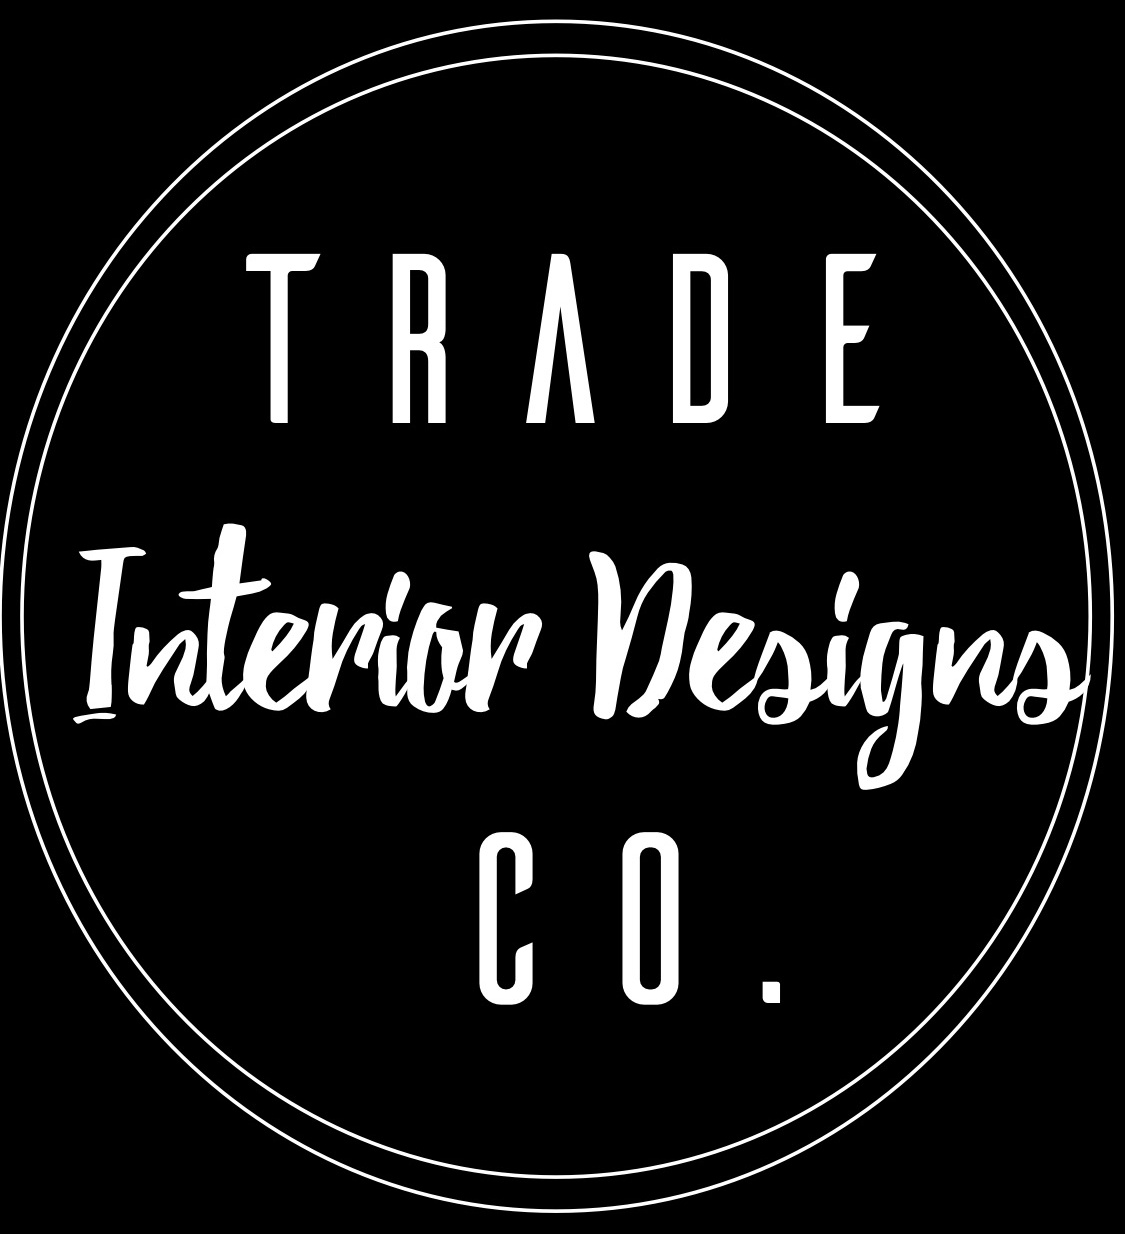 Trade Interior Design Co.